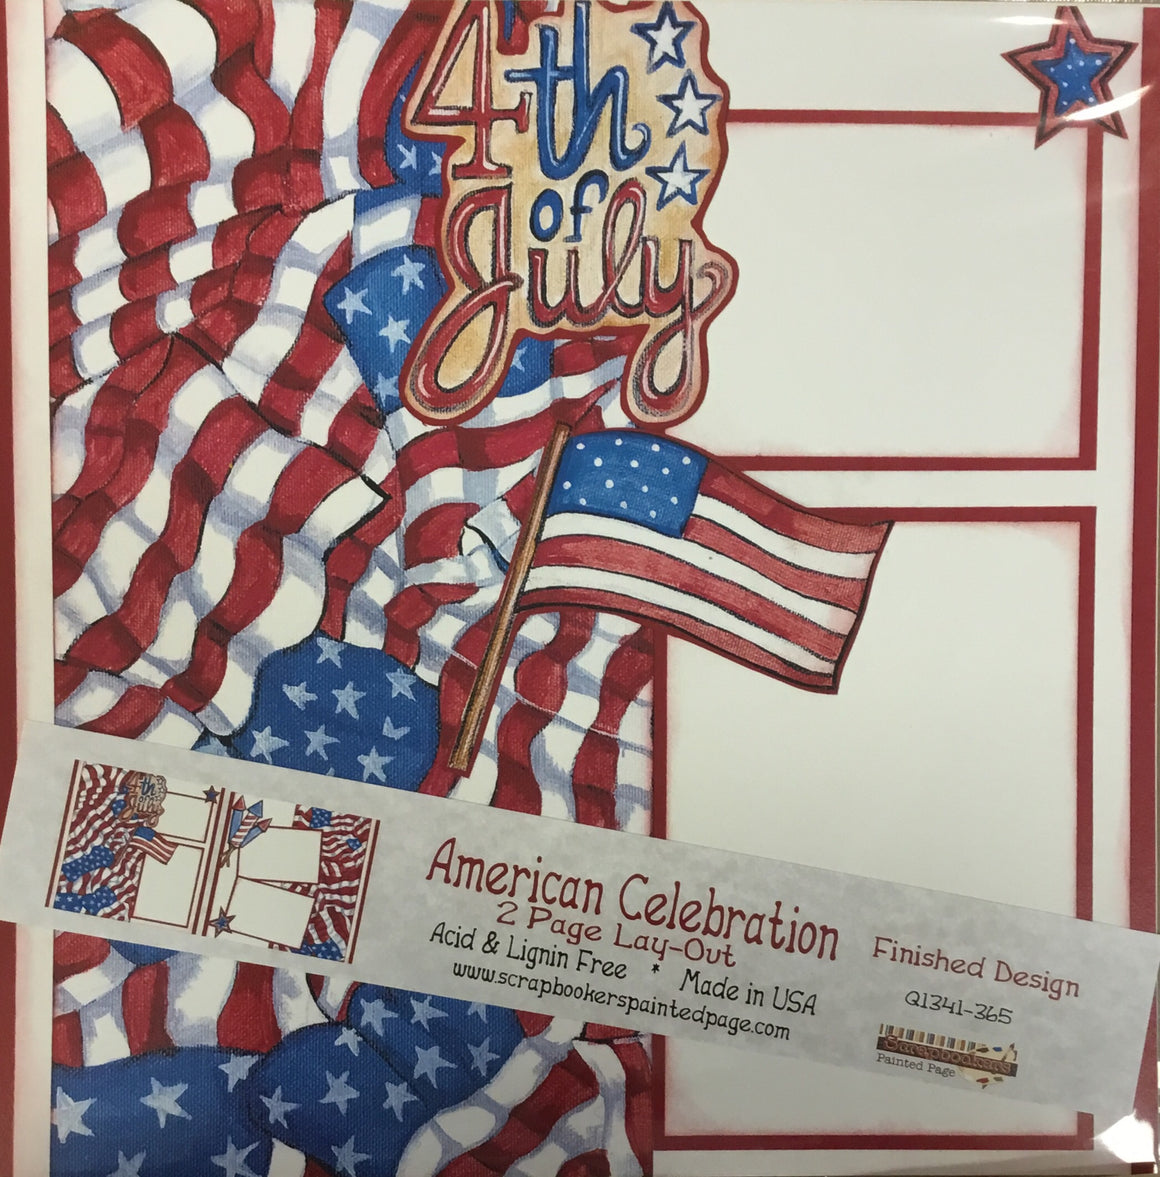 12x12 2 page layout American Celebration